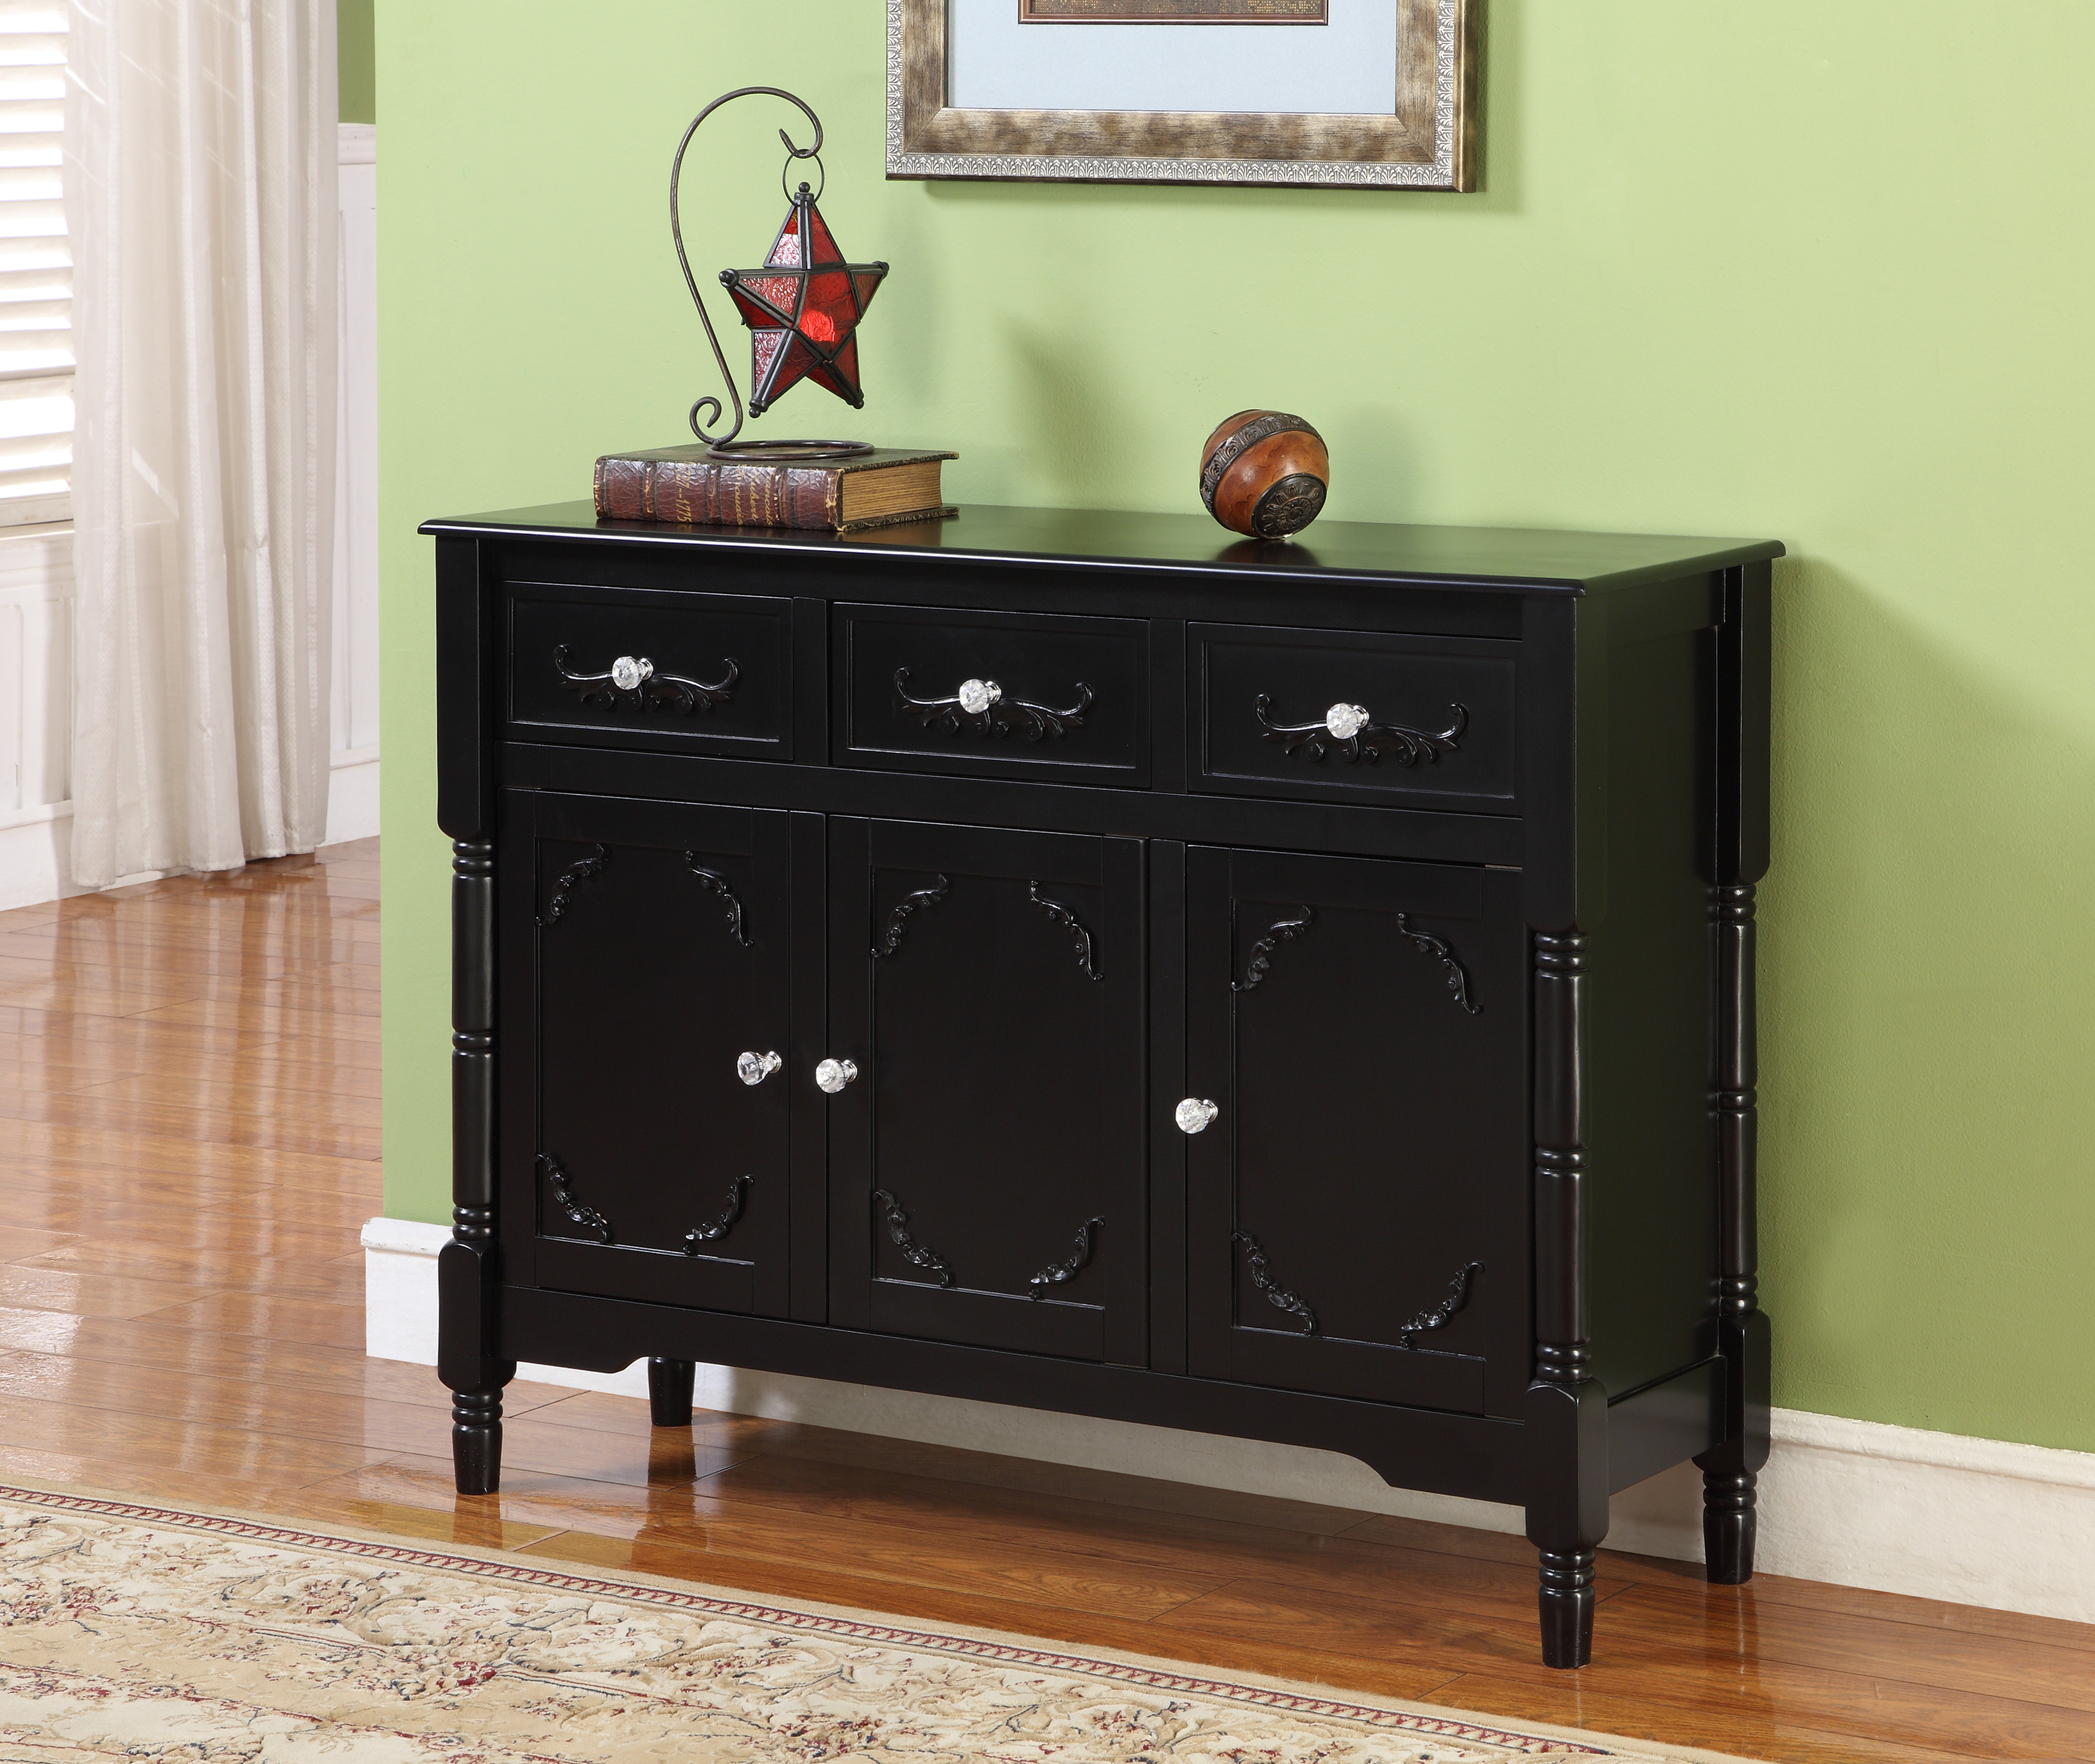 Camden Black Wood Contemporary Sideboard Buffet Display Console Table With  Storage Drawers & Doors With Regard To Contemporary Black Buffets (View 5 of 20)